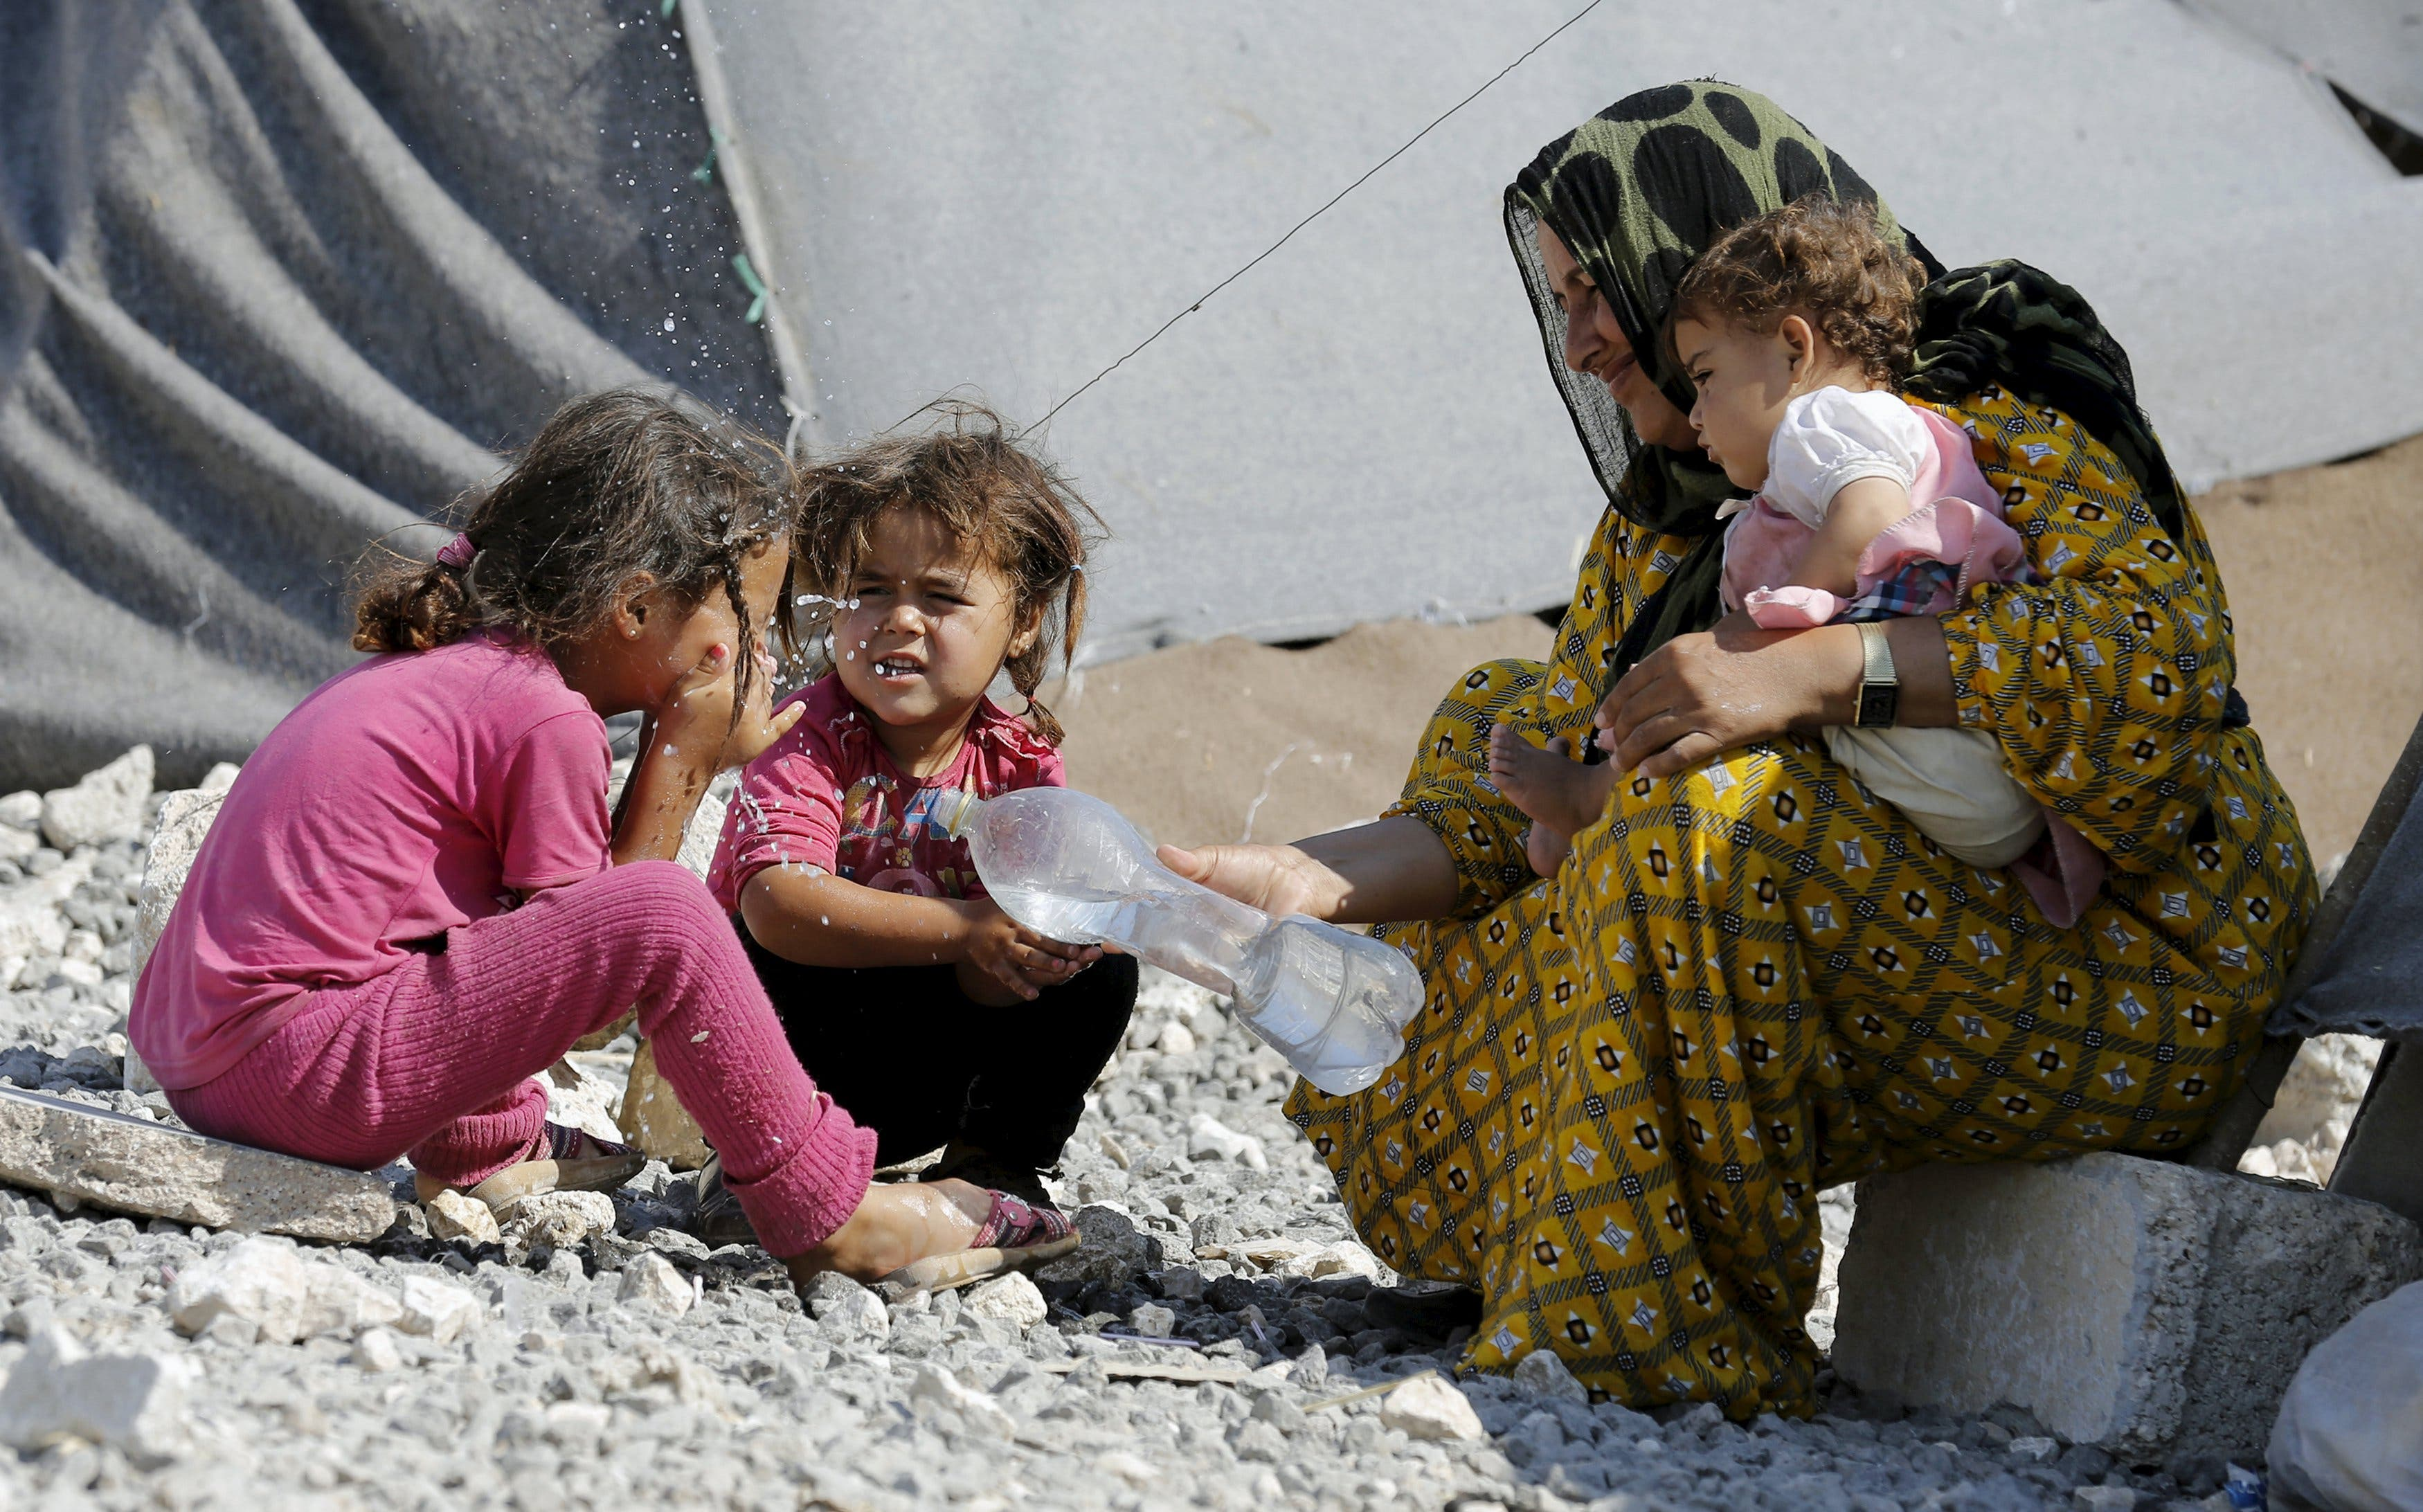 A Syrian refugee girl from the northern Syrian town of Tel Abyad washes her face as she is accompanied by her mother and sisters in Akcakale, in Sanliurfa province, Turkey, June 18, 2015. (Reuters)